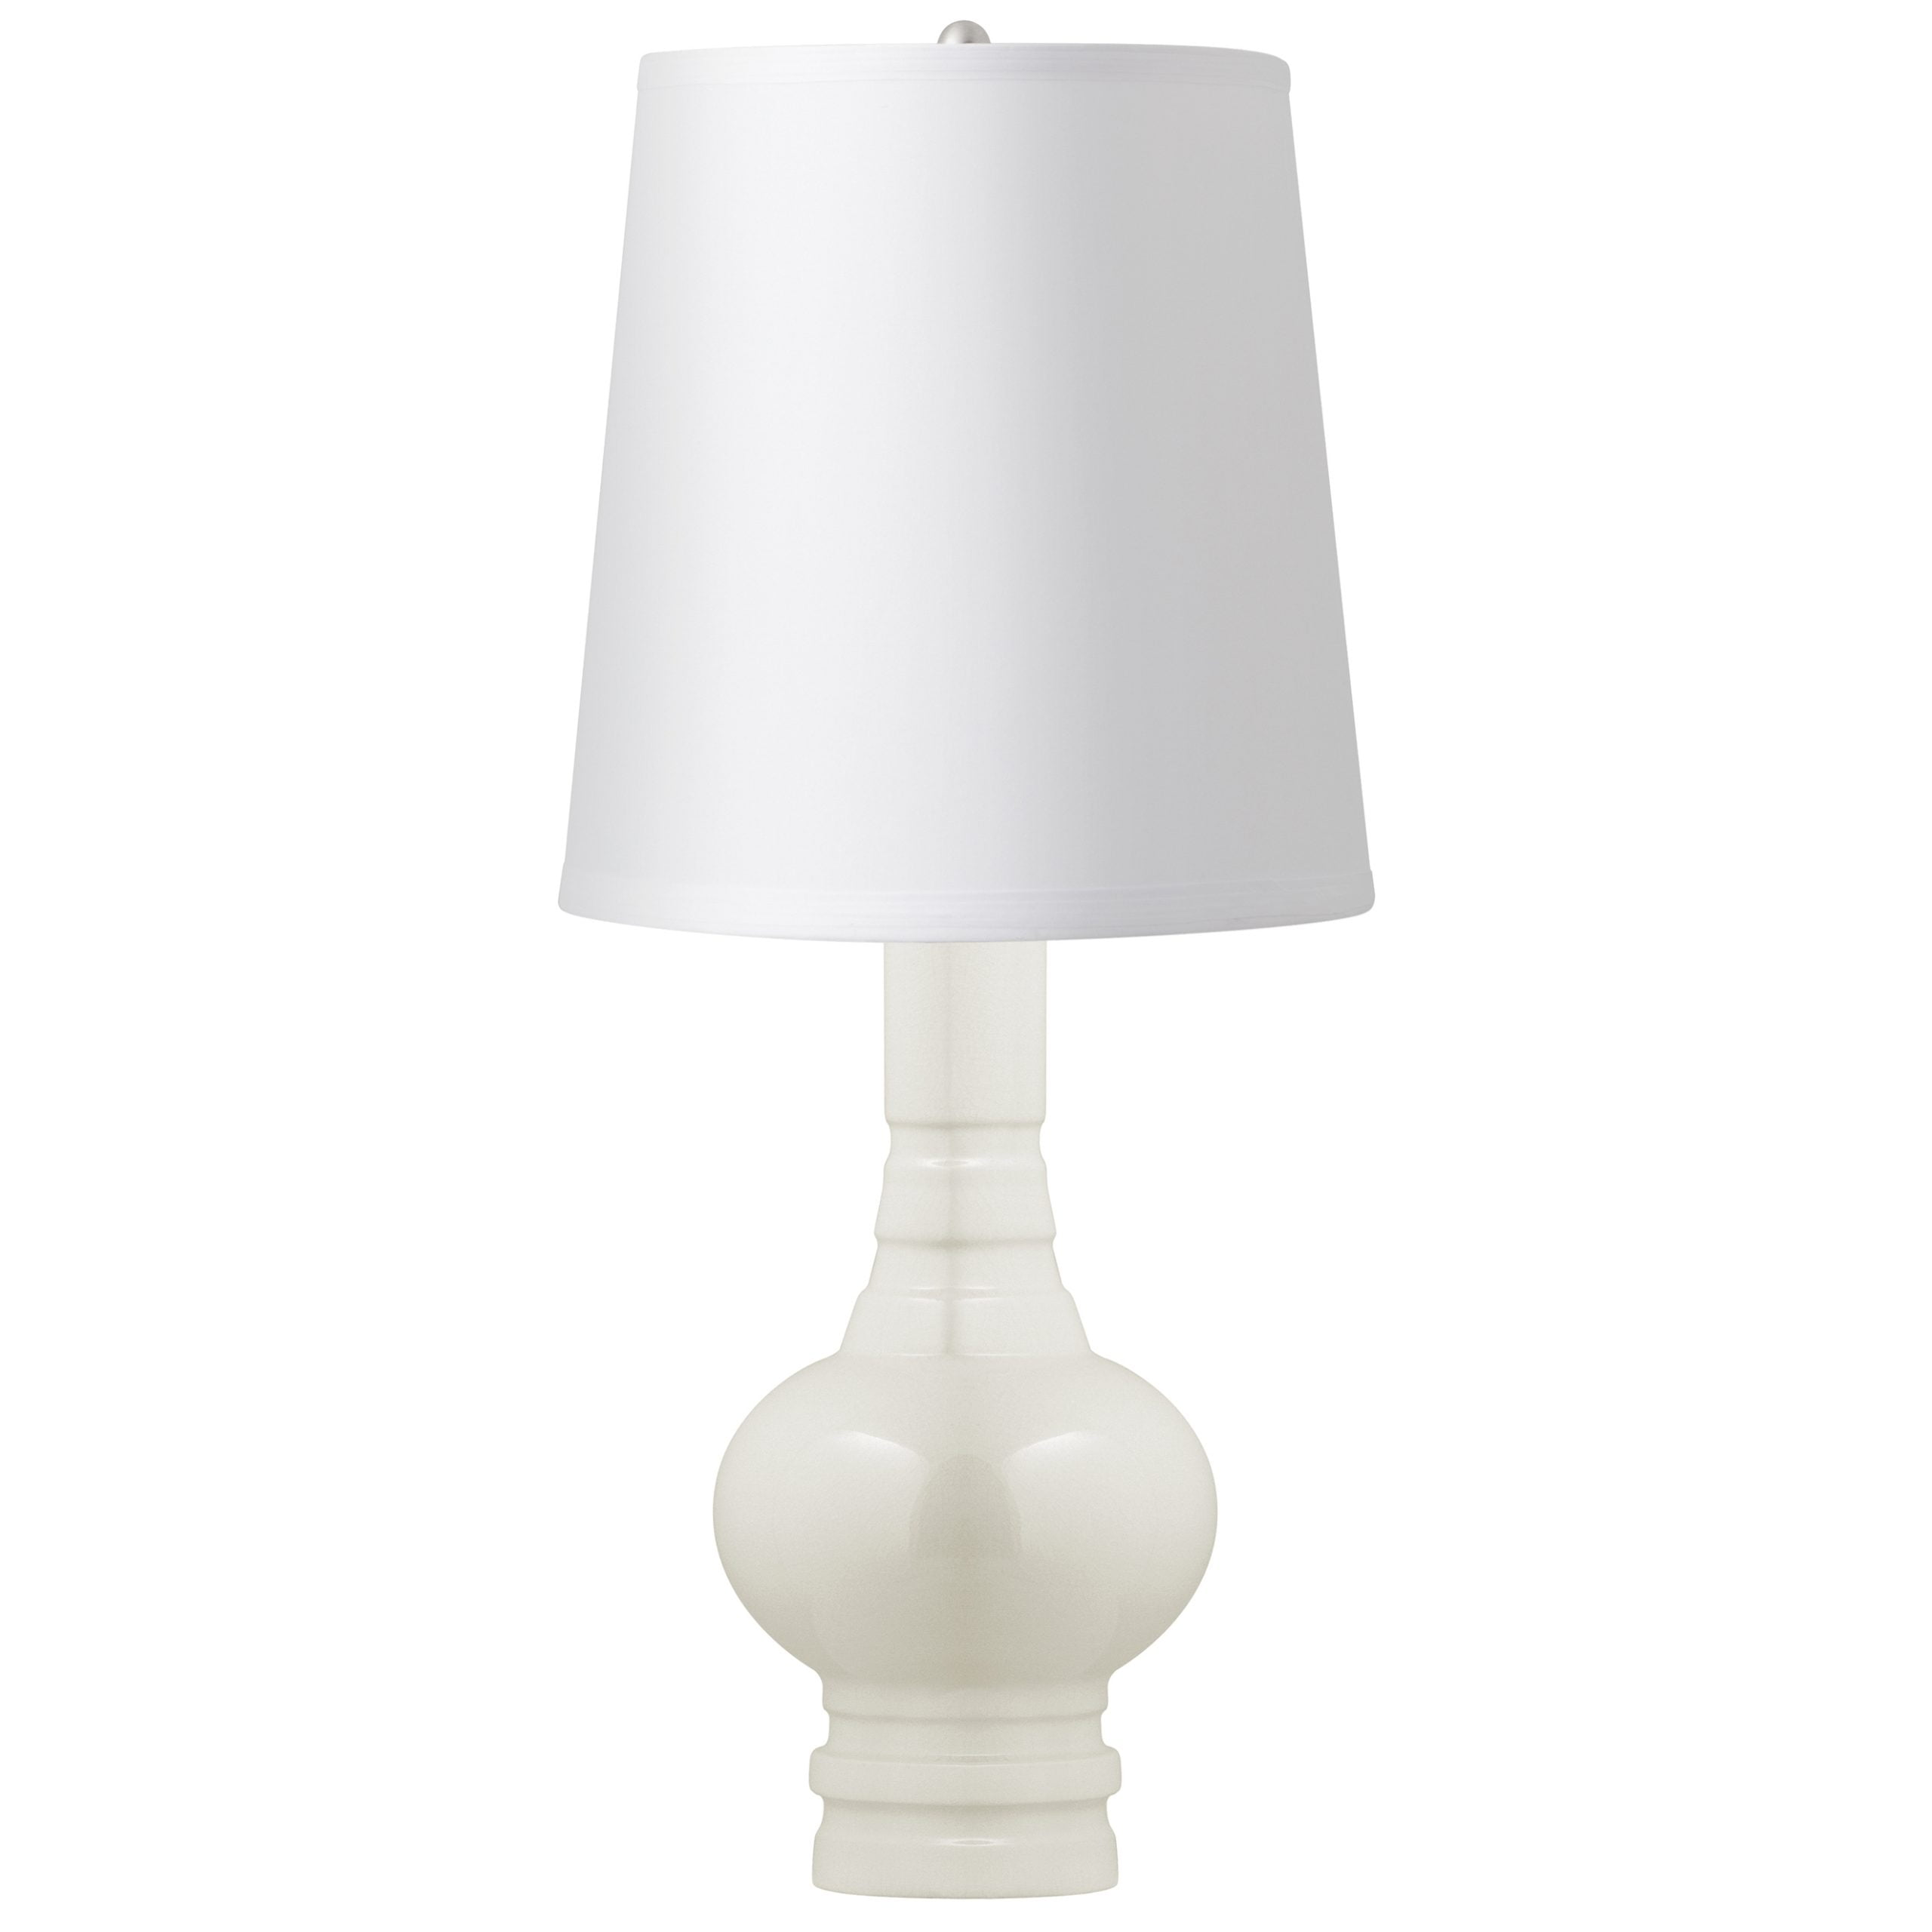 Batley Table Lamp